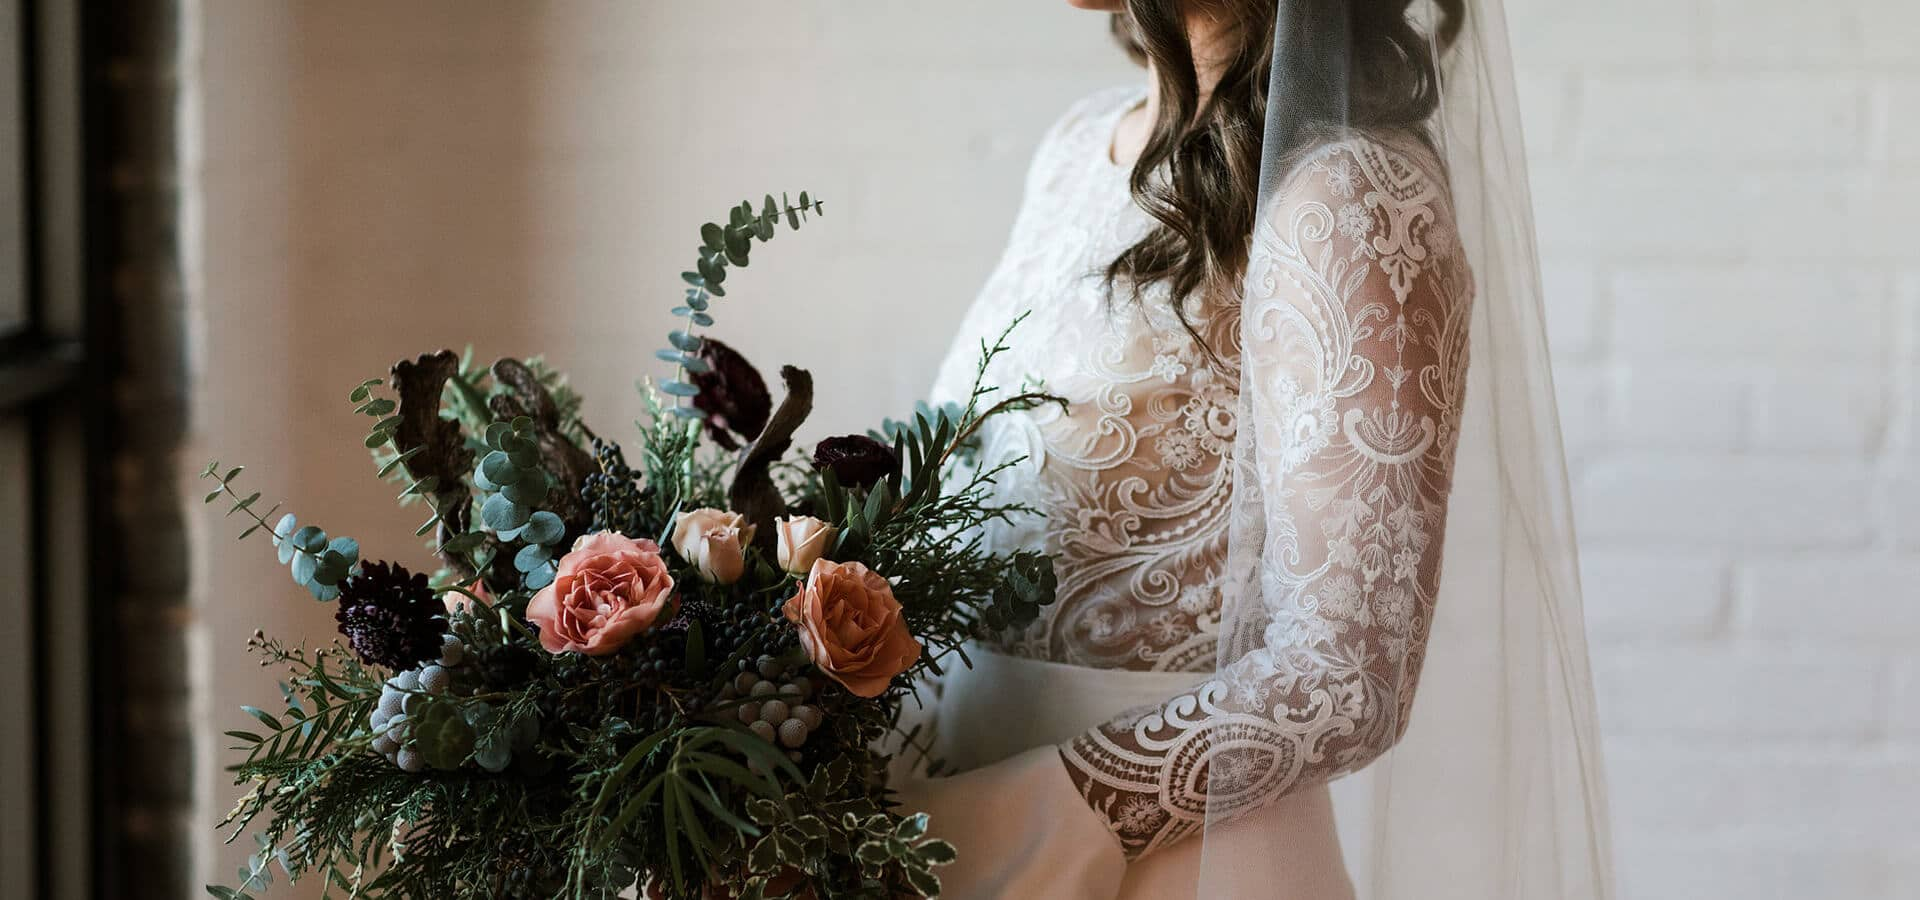 Hero image for 5 Creative Ways To Re-Purpose Your Wedding Dress Once the Big Day is Over